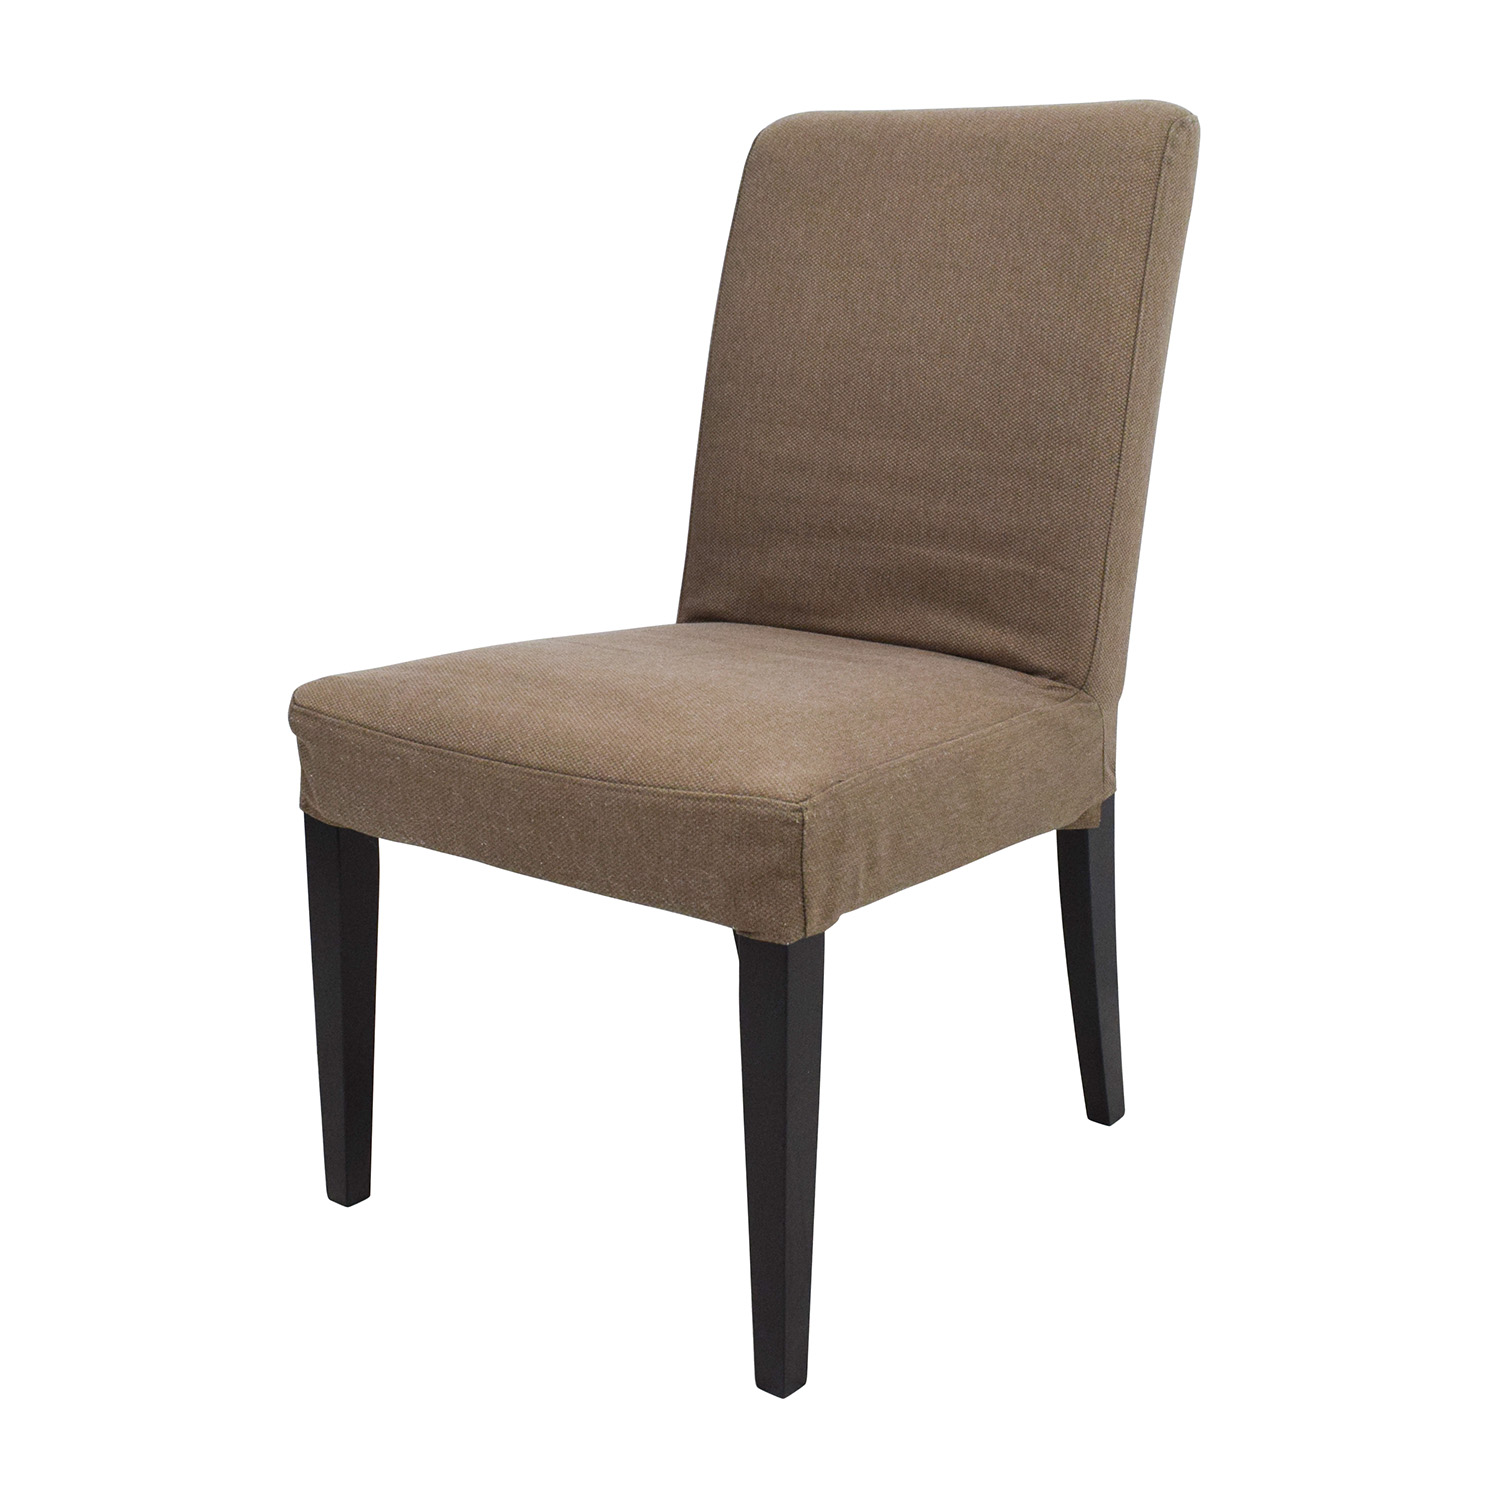 Accent Chair Ikea Beautiful Ikea Accent Chairs Rtty1 Rtty1